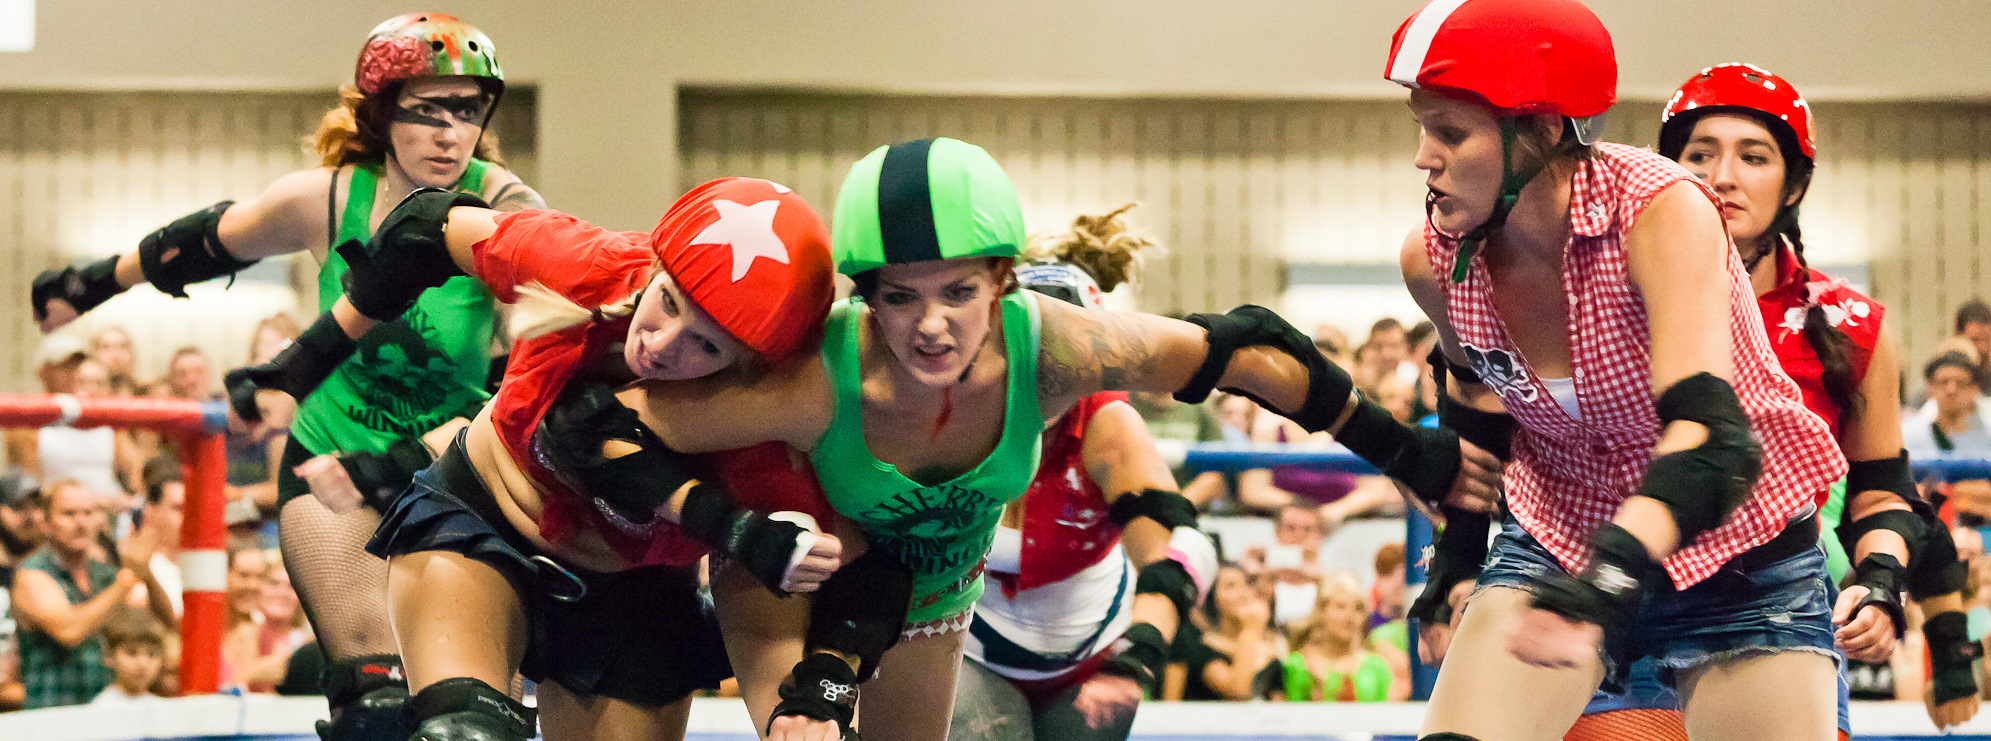 Roller derby photo essay